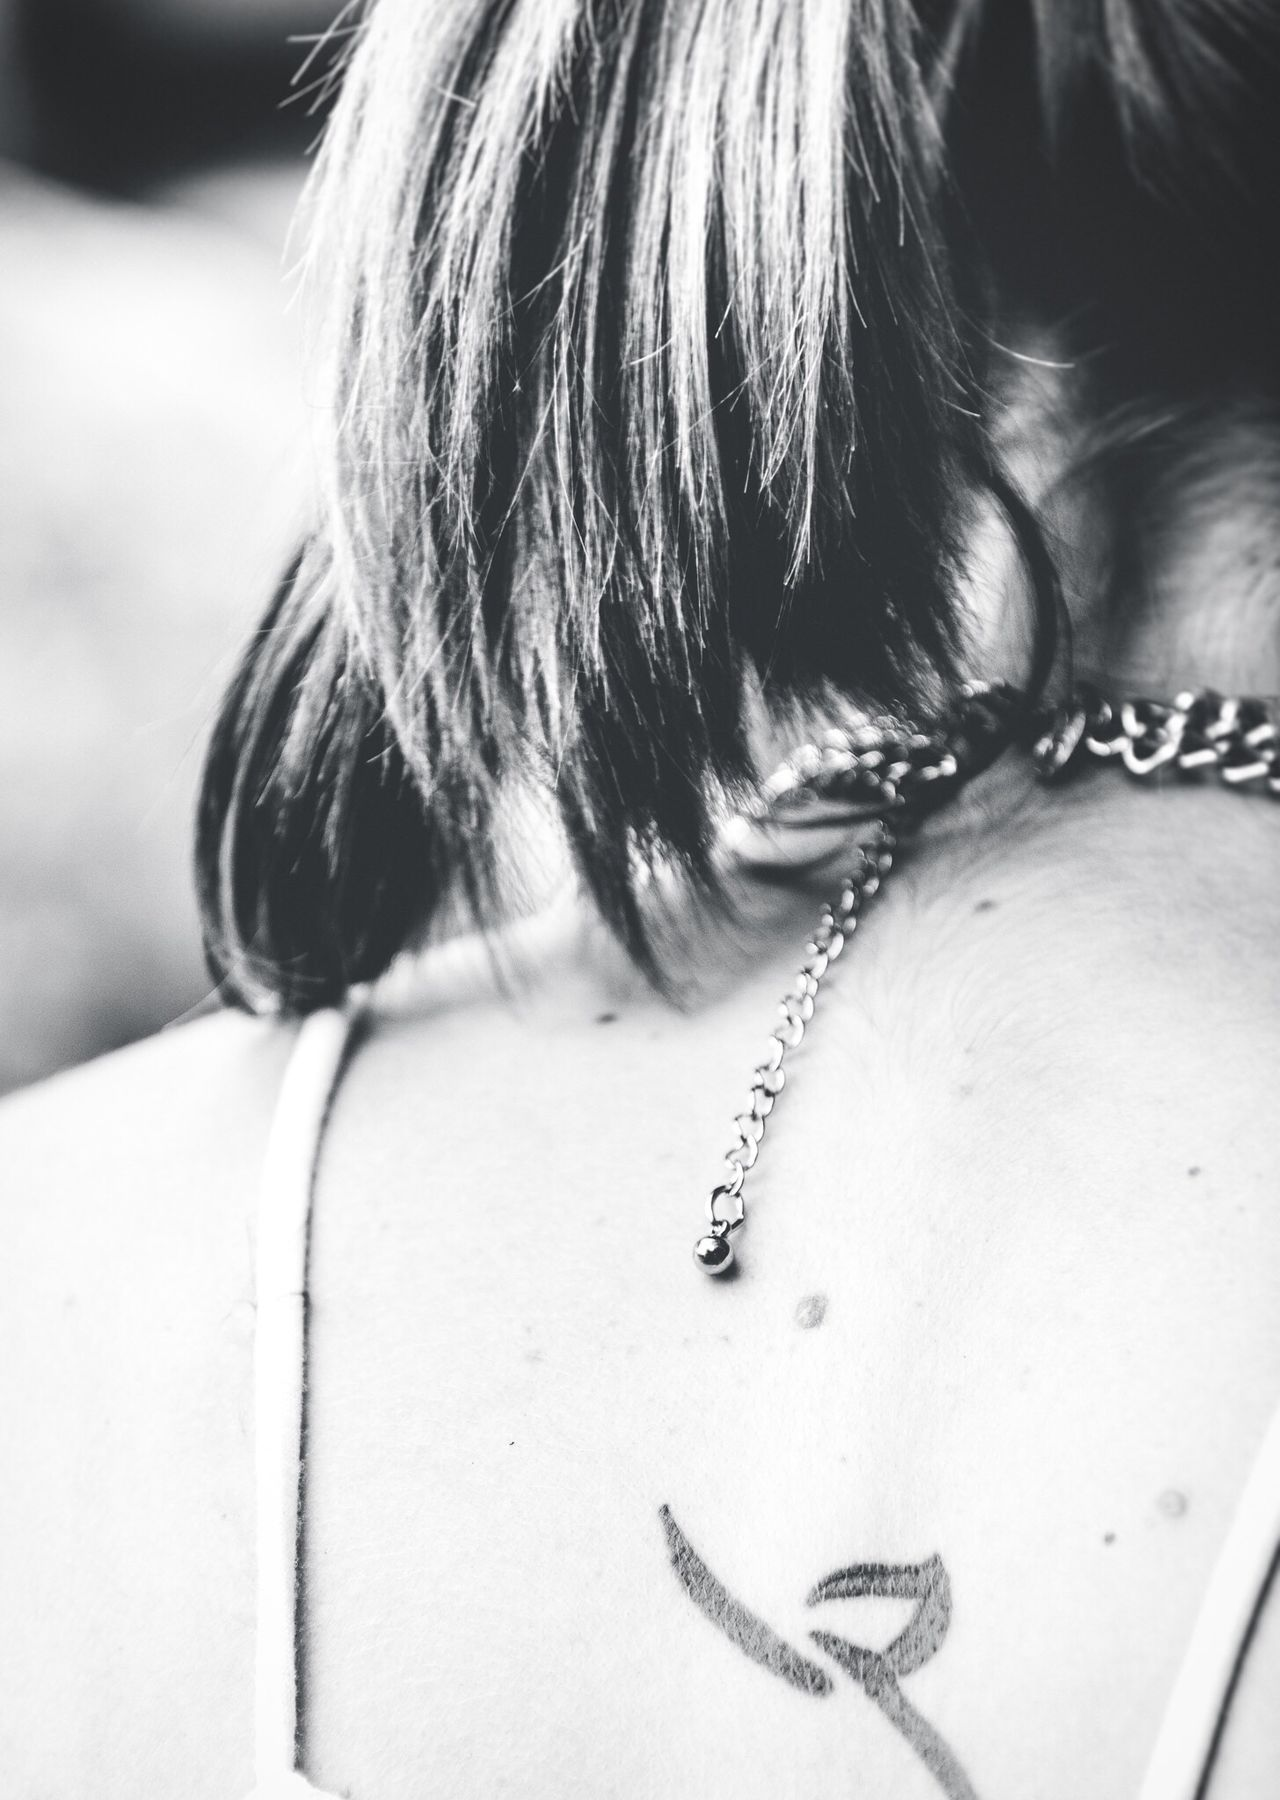 Necklace One Person Real People Close-up Chain Headshot Indoors  Childhood Human Body Part Day Locket People Blackandwhite Black & White Black And White Tattoo